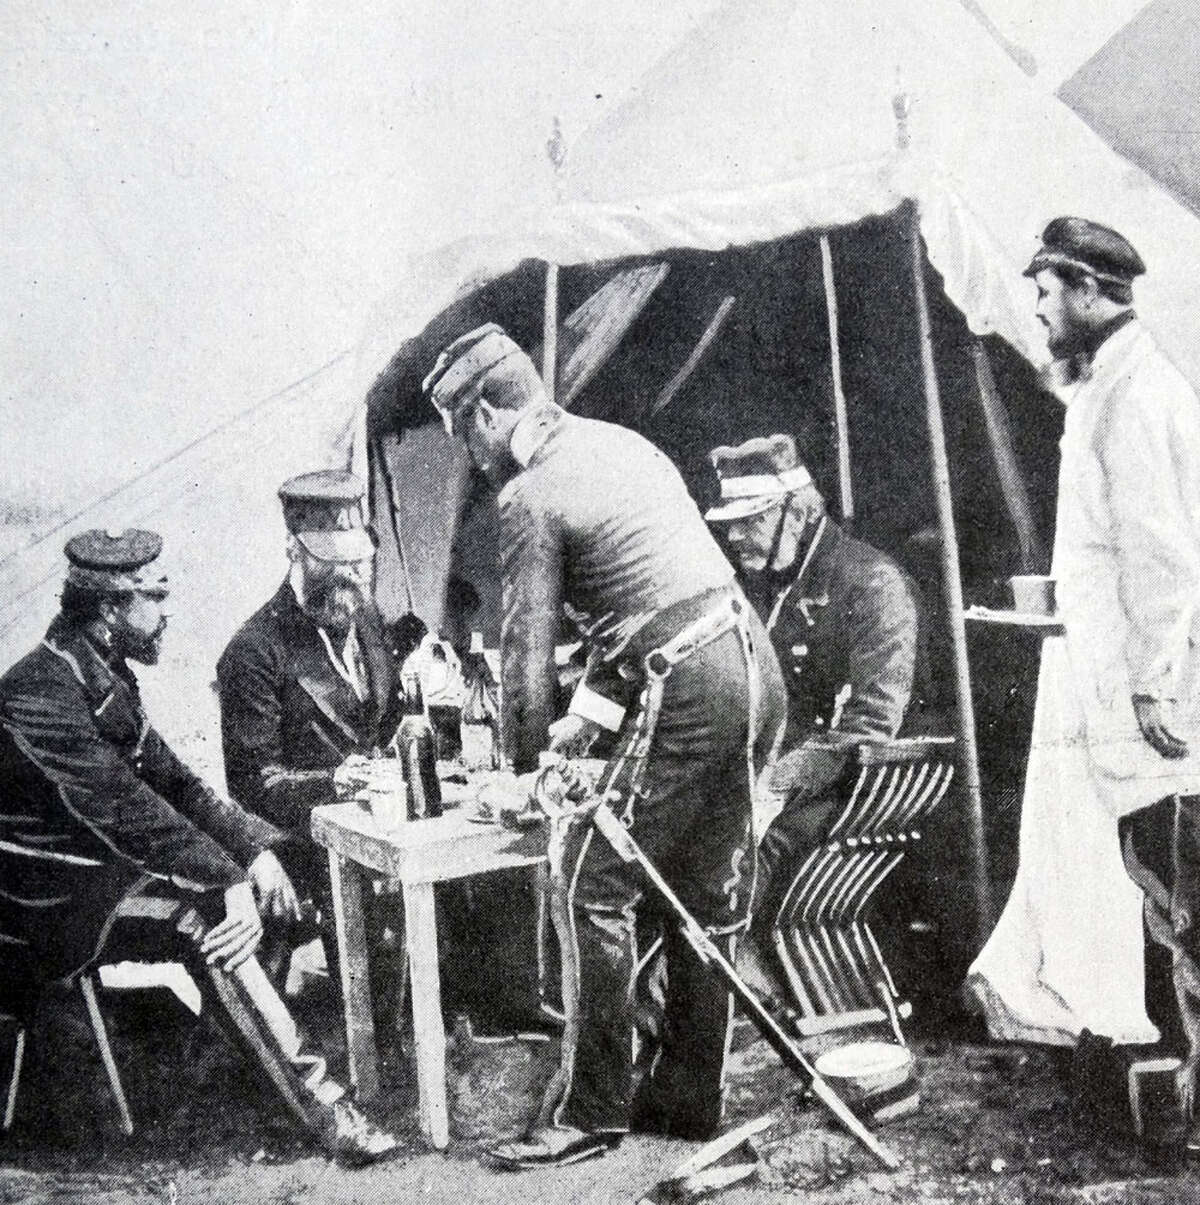 British officers during the Crimean war, 1854.